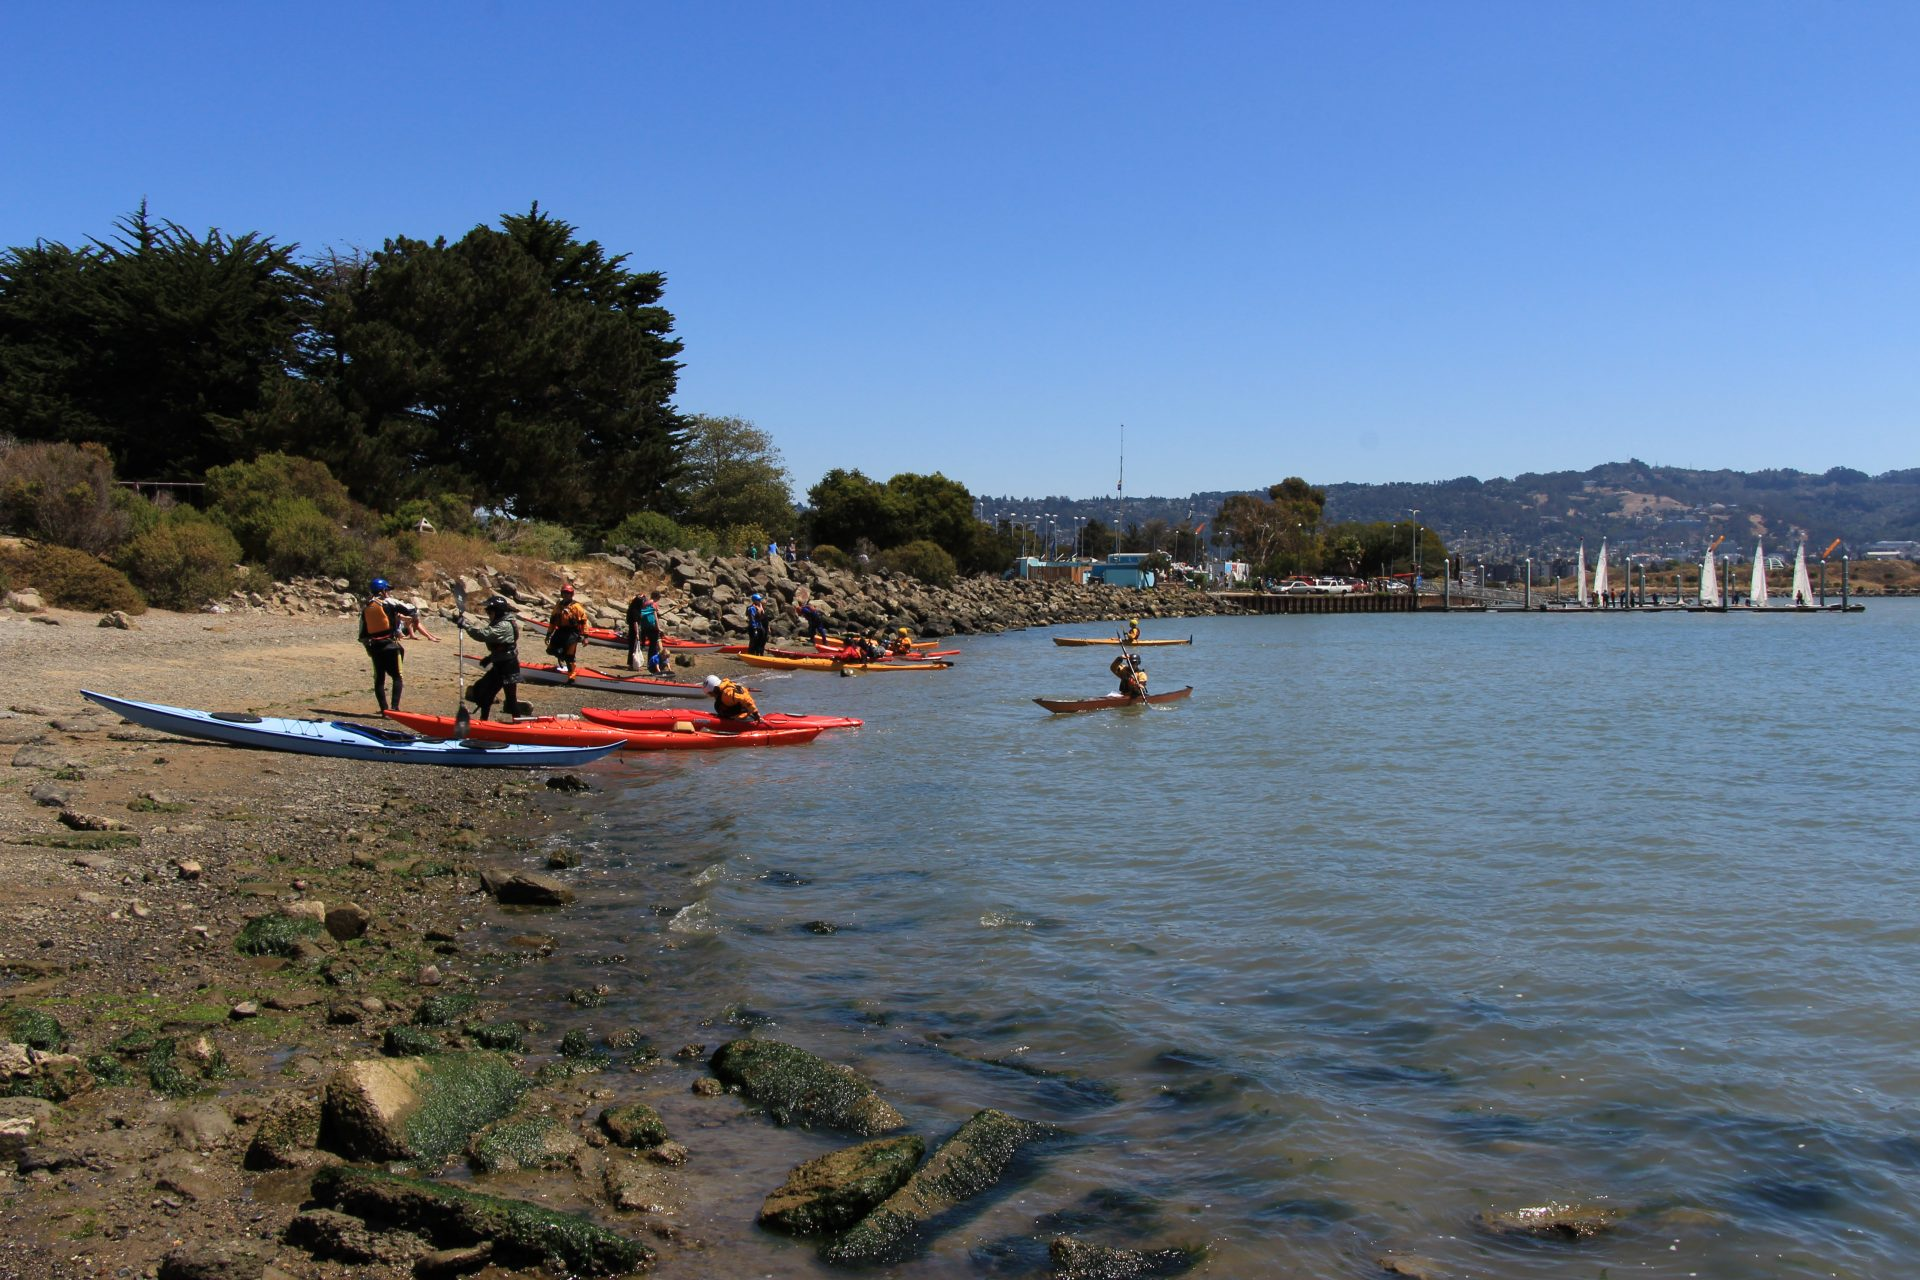 Group of kayakers coming ashore on rocky beach